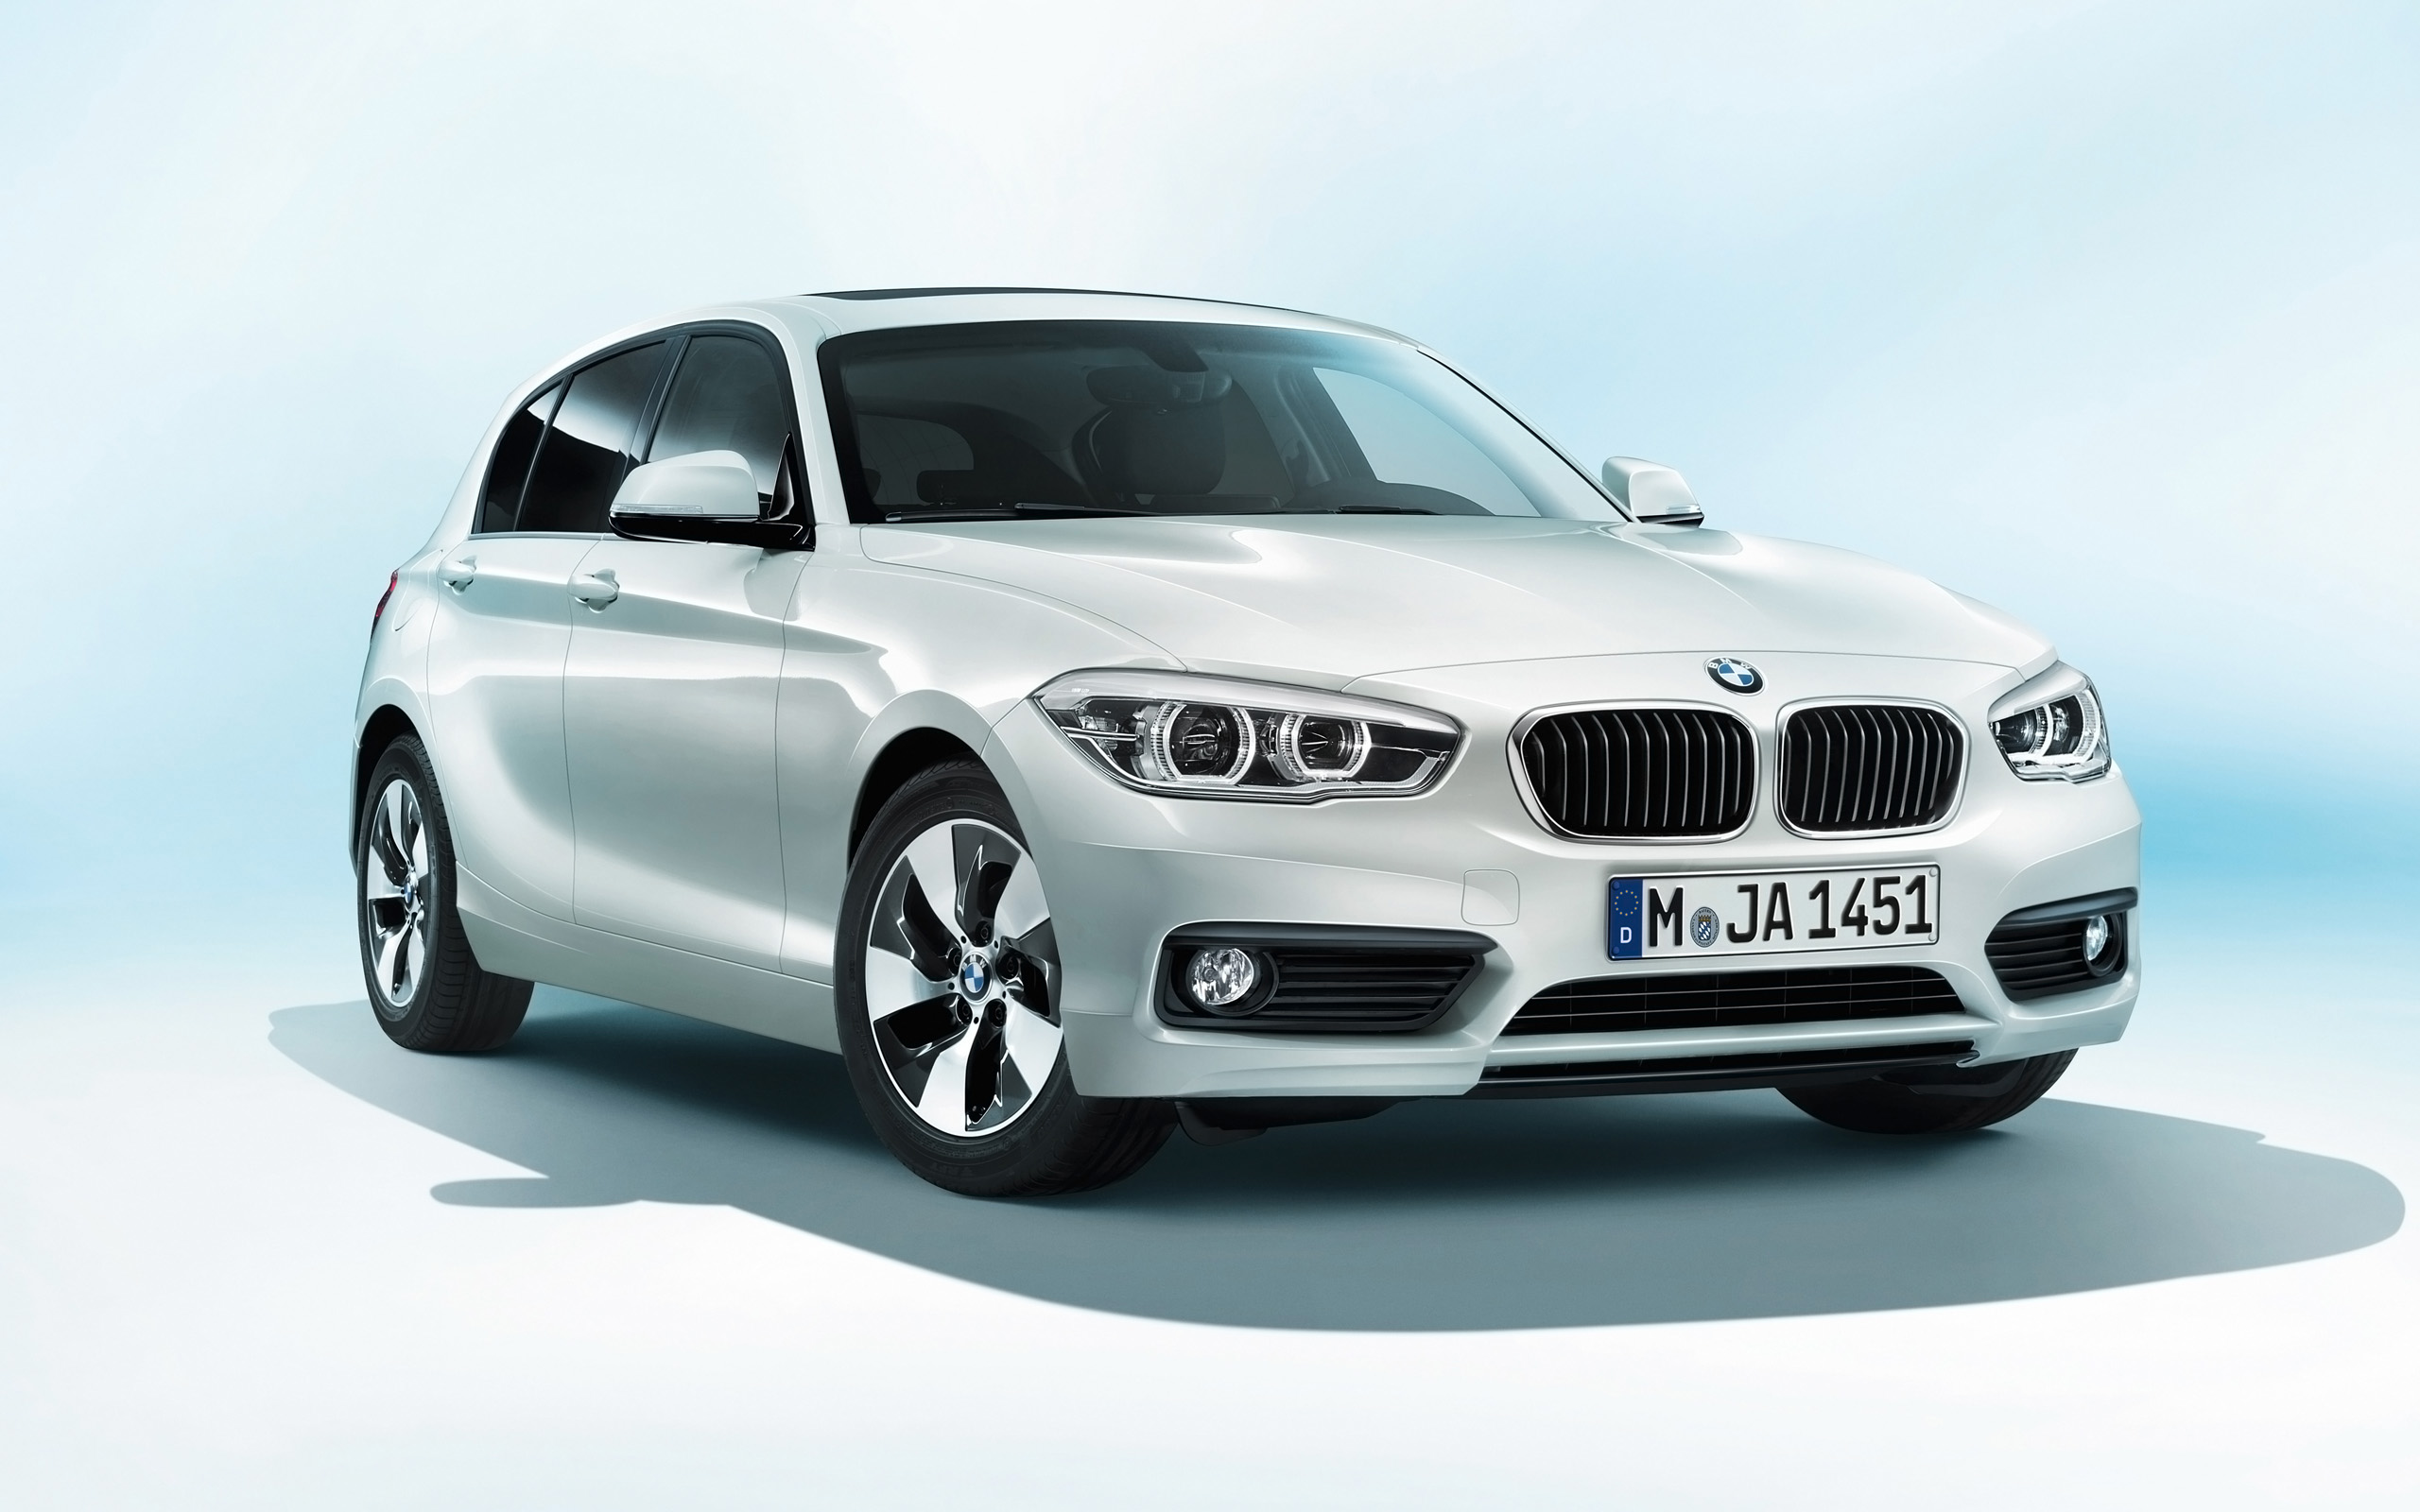 2015 BMW 1 Series Wallpaper | HD Car Wallpapers